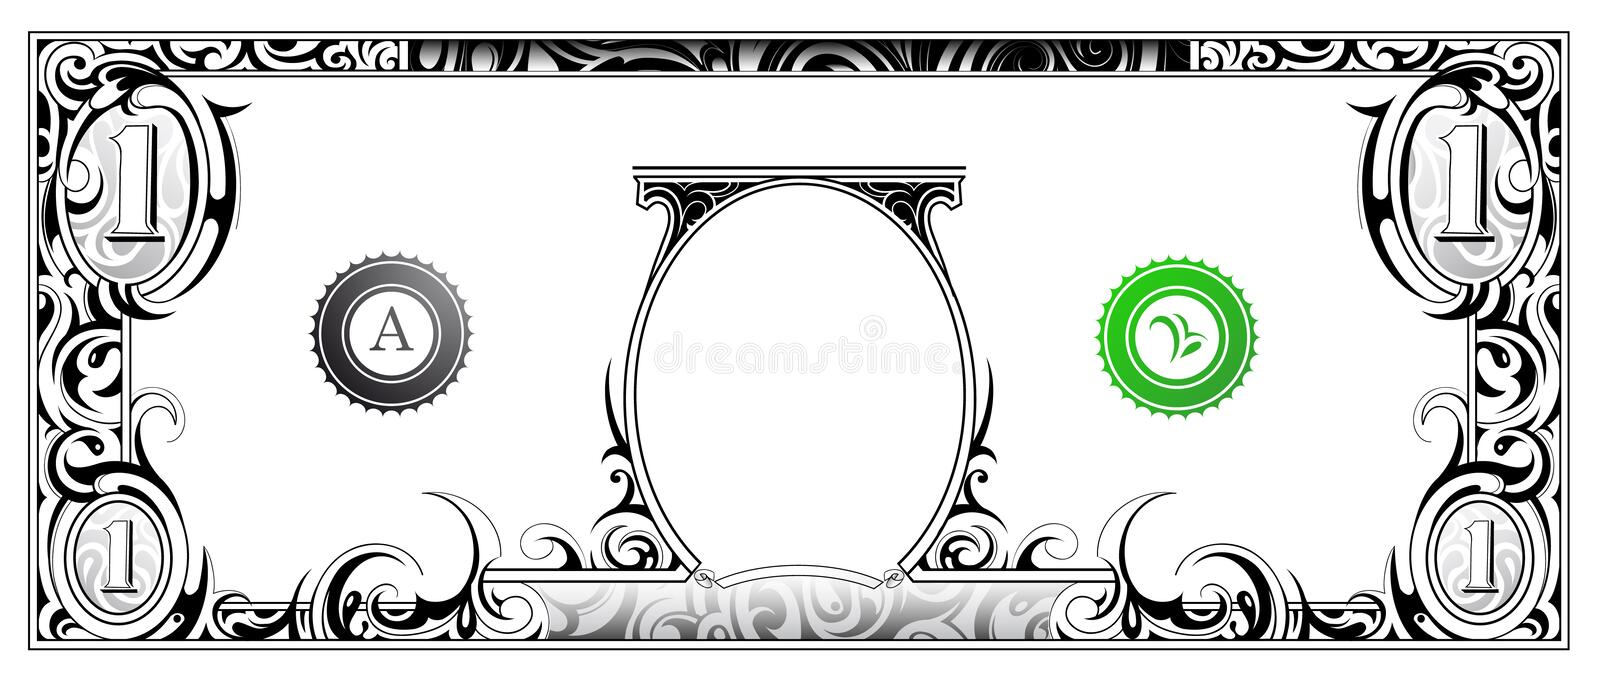 Billet d'un dollar illustration de vecteur